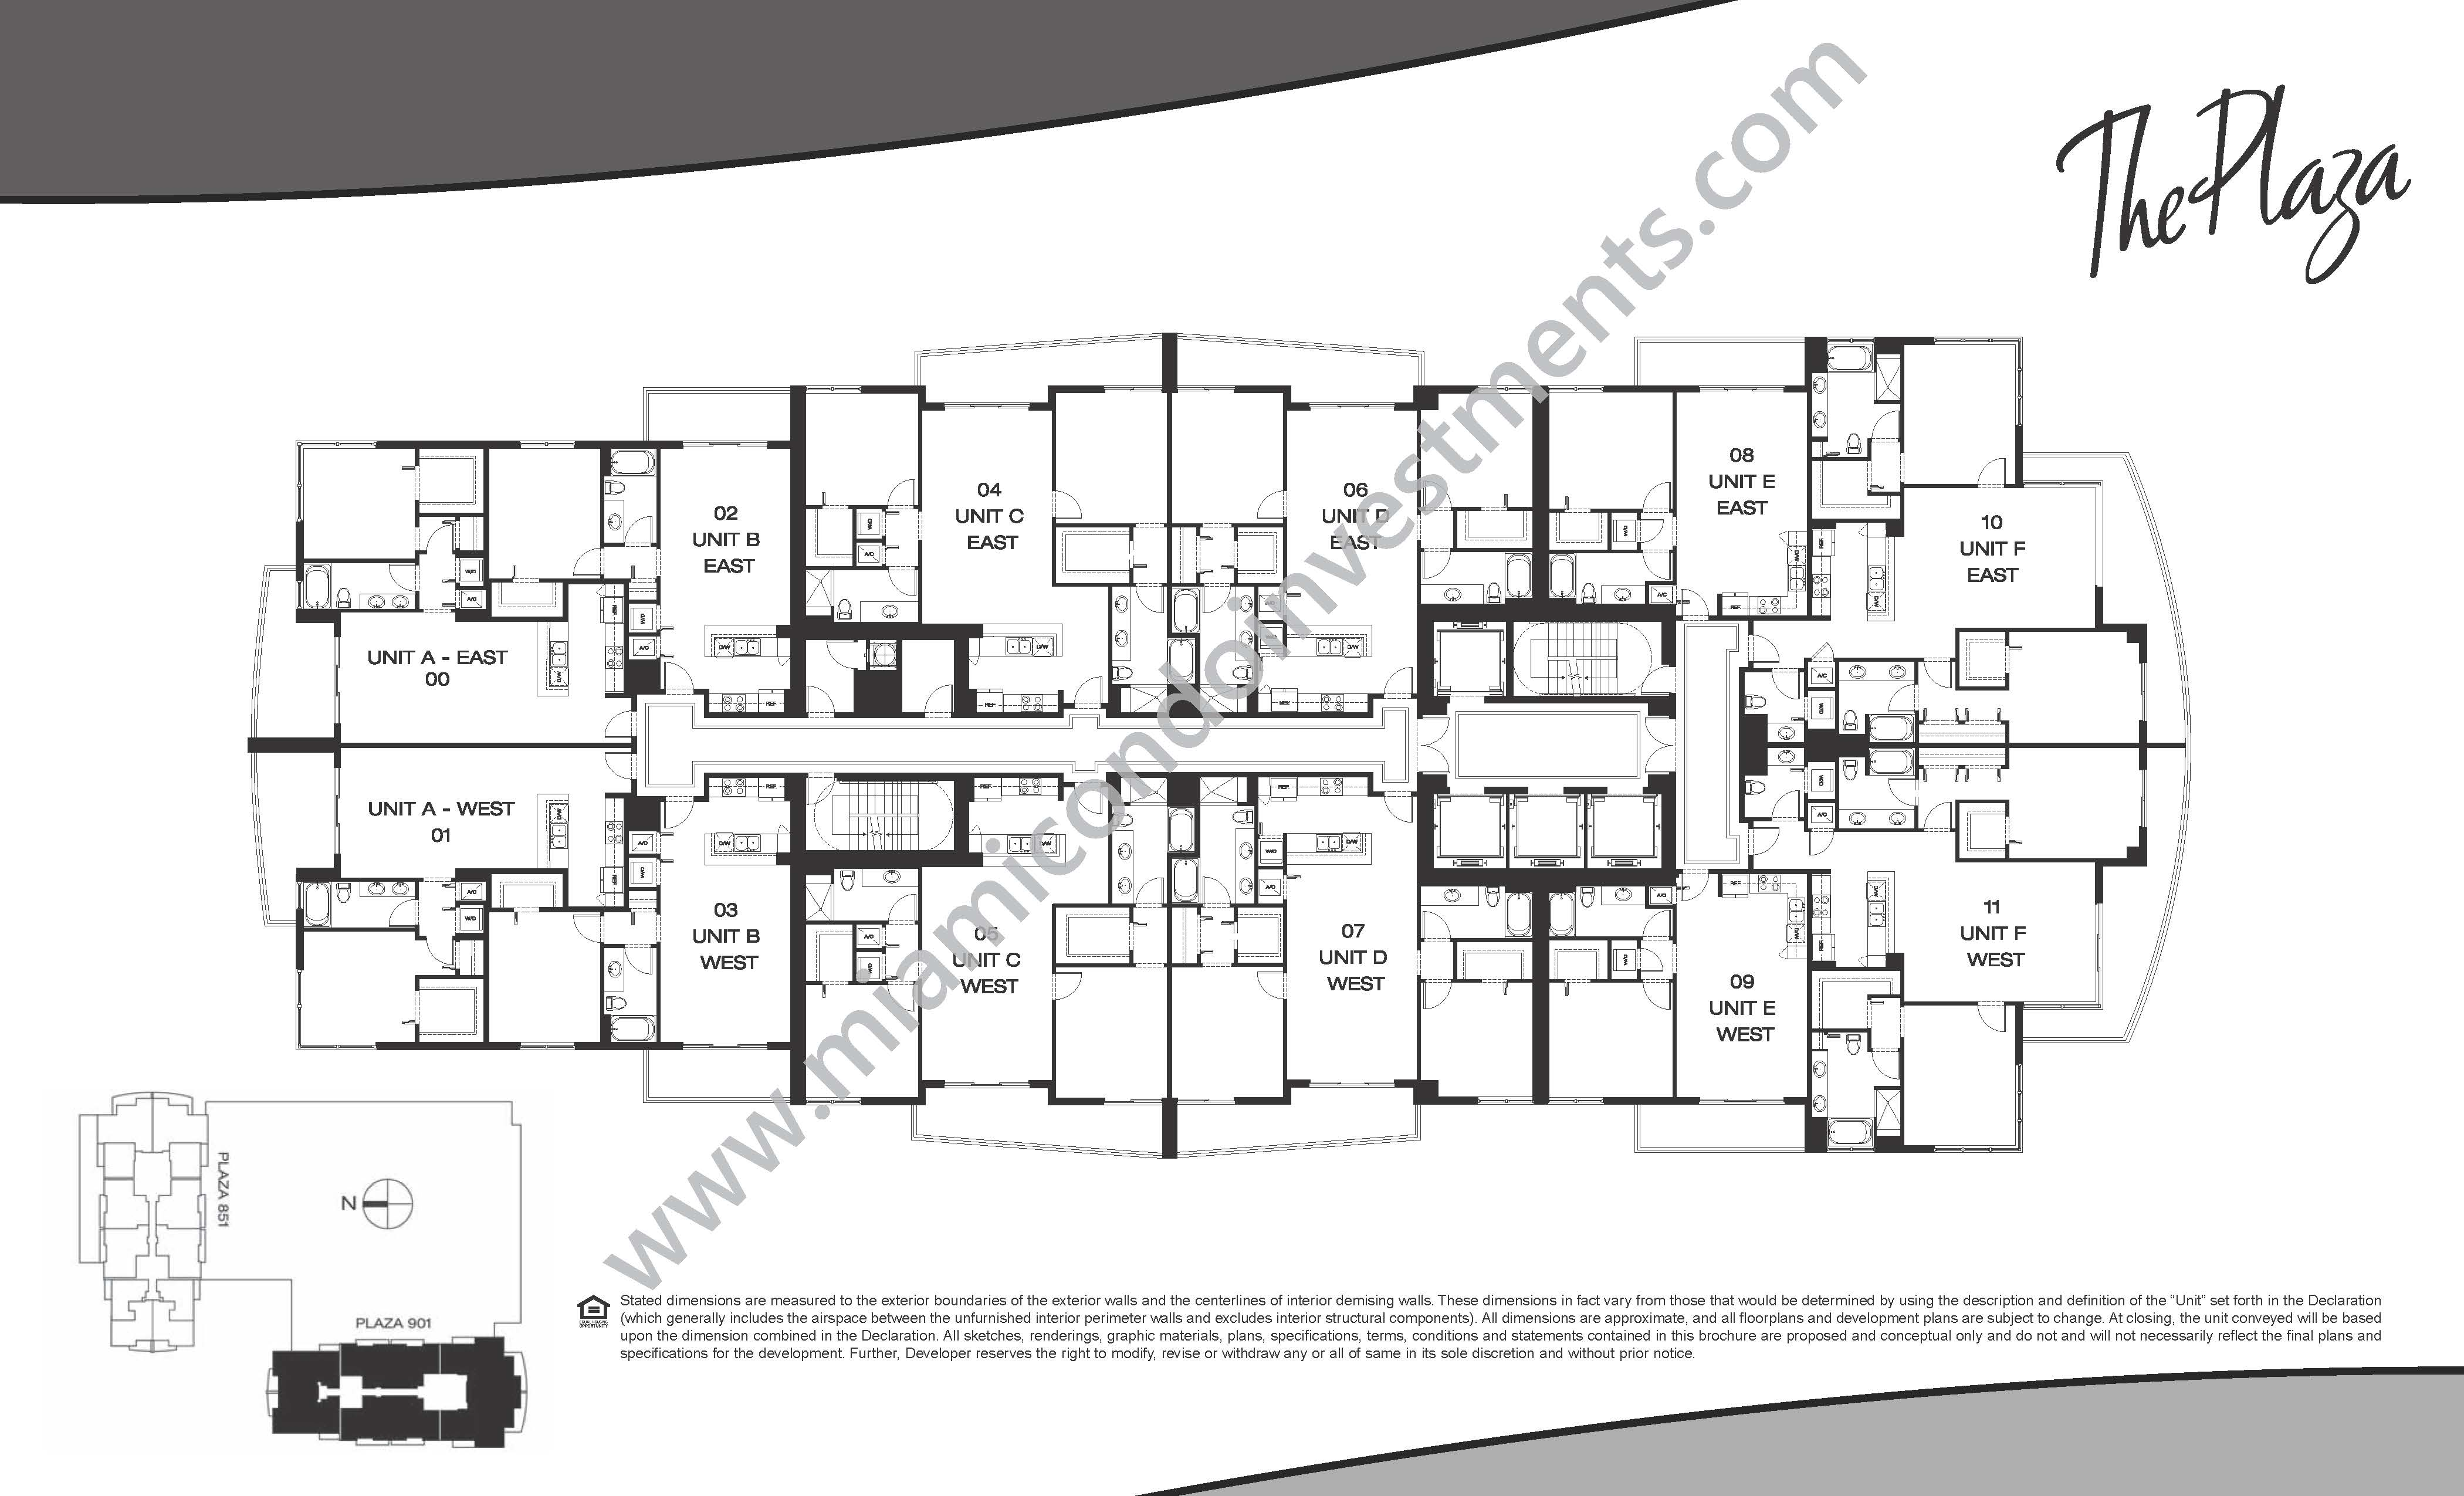 the-plaza-on-brickell-west-condos-site-plan